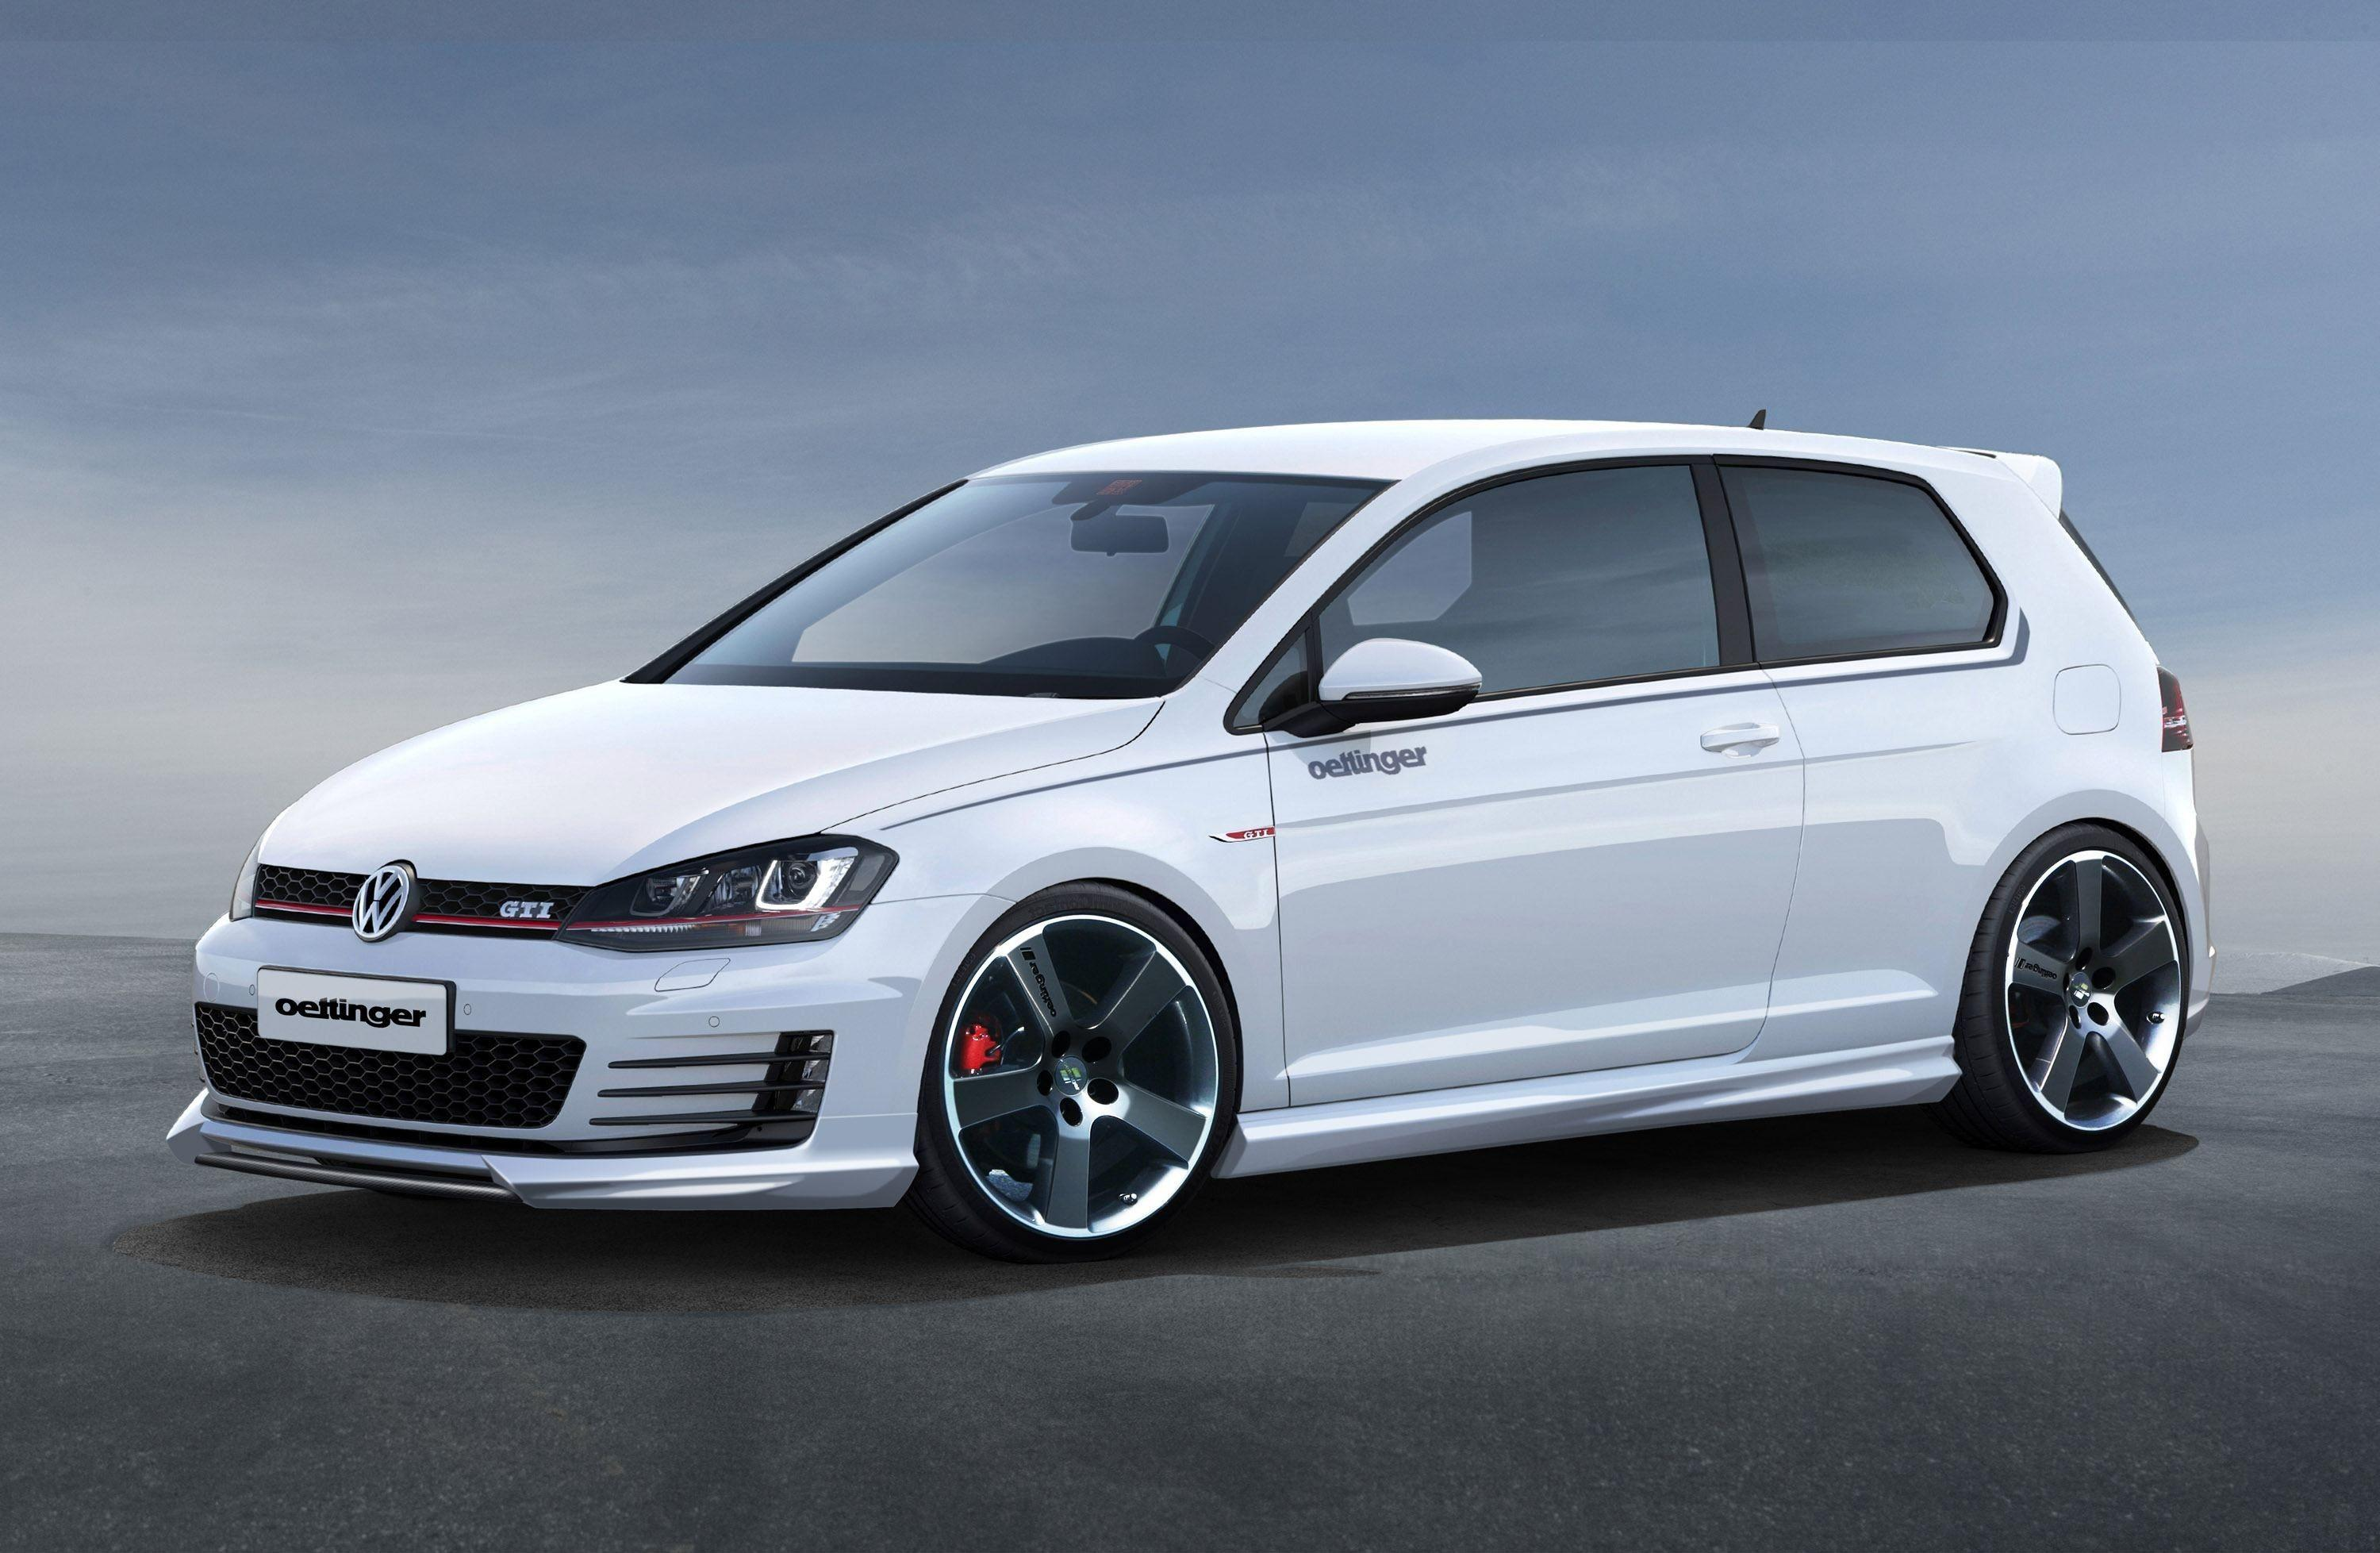 vw golf 7 gti volkswagen golf mk7 wallpaper and background